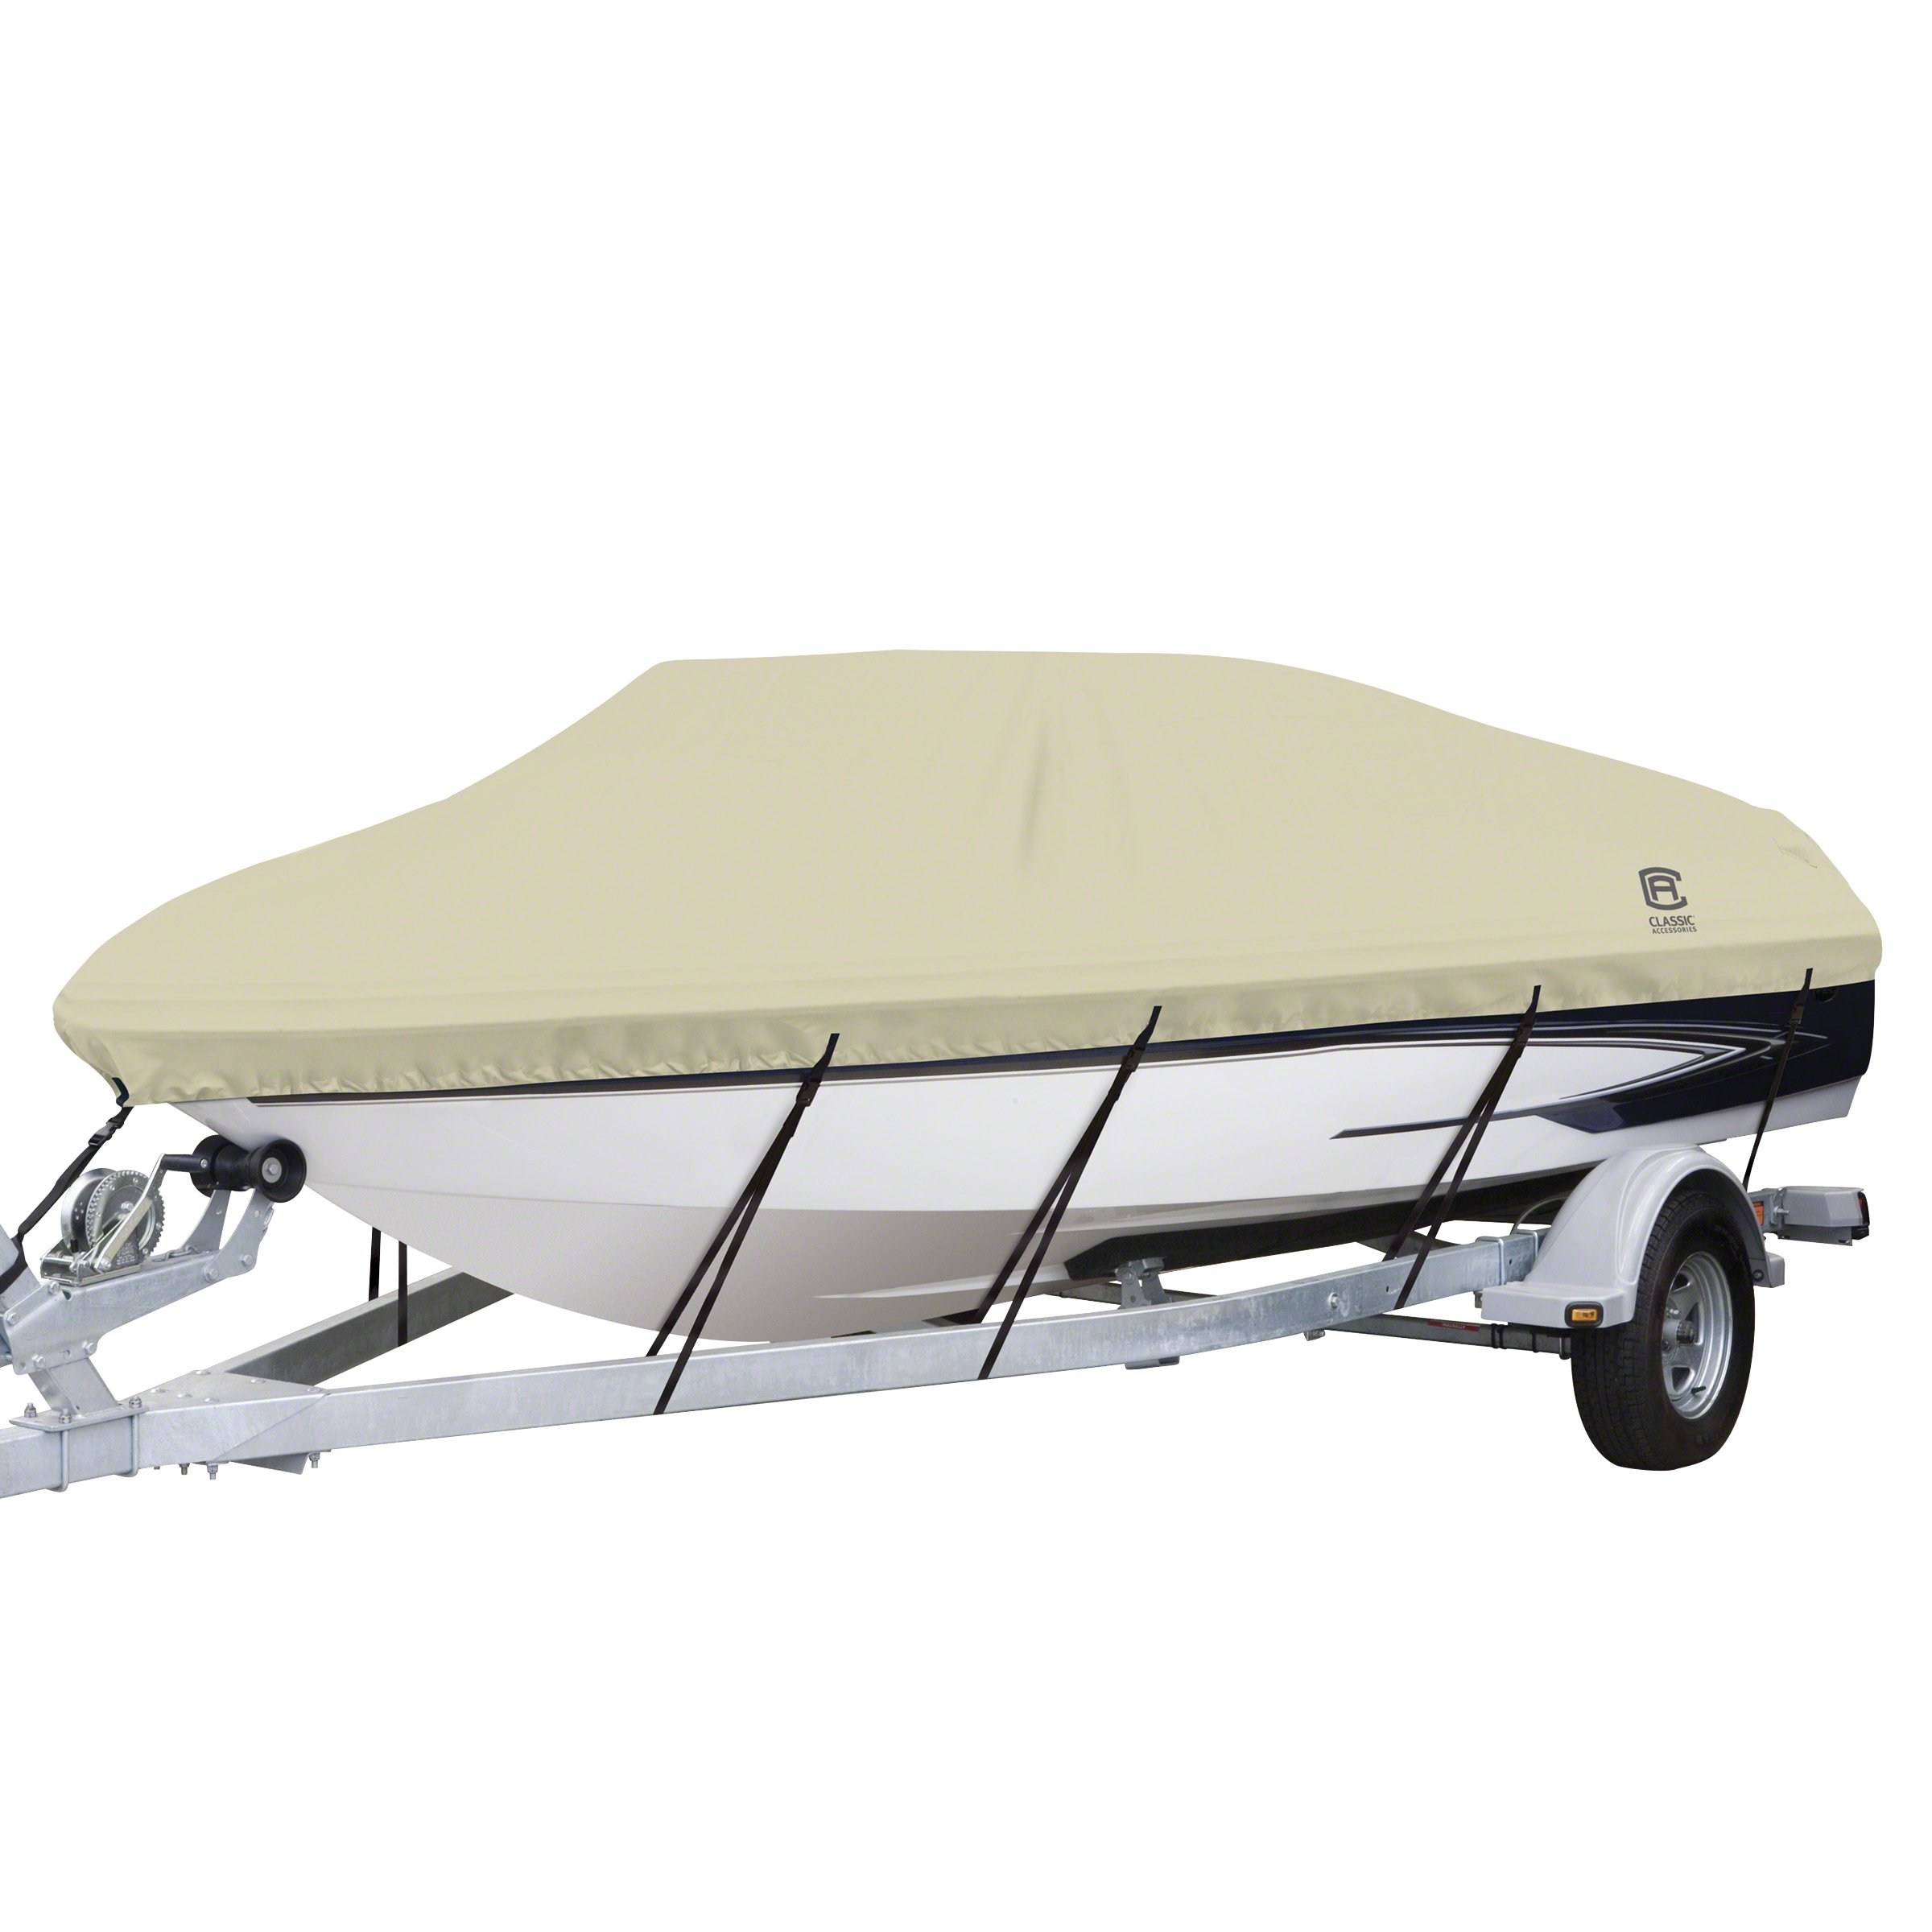 Classic Accessories DryGuard Heavy Duty Waterproof Boat Cover For V-Hull Runabouts, For 17' - 19' L Up to 102'' W by Classic Accessories